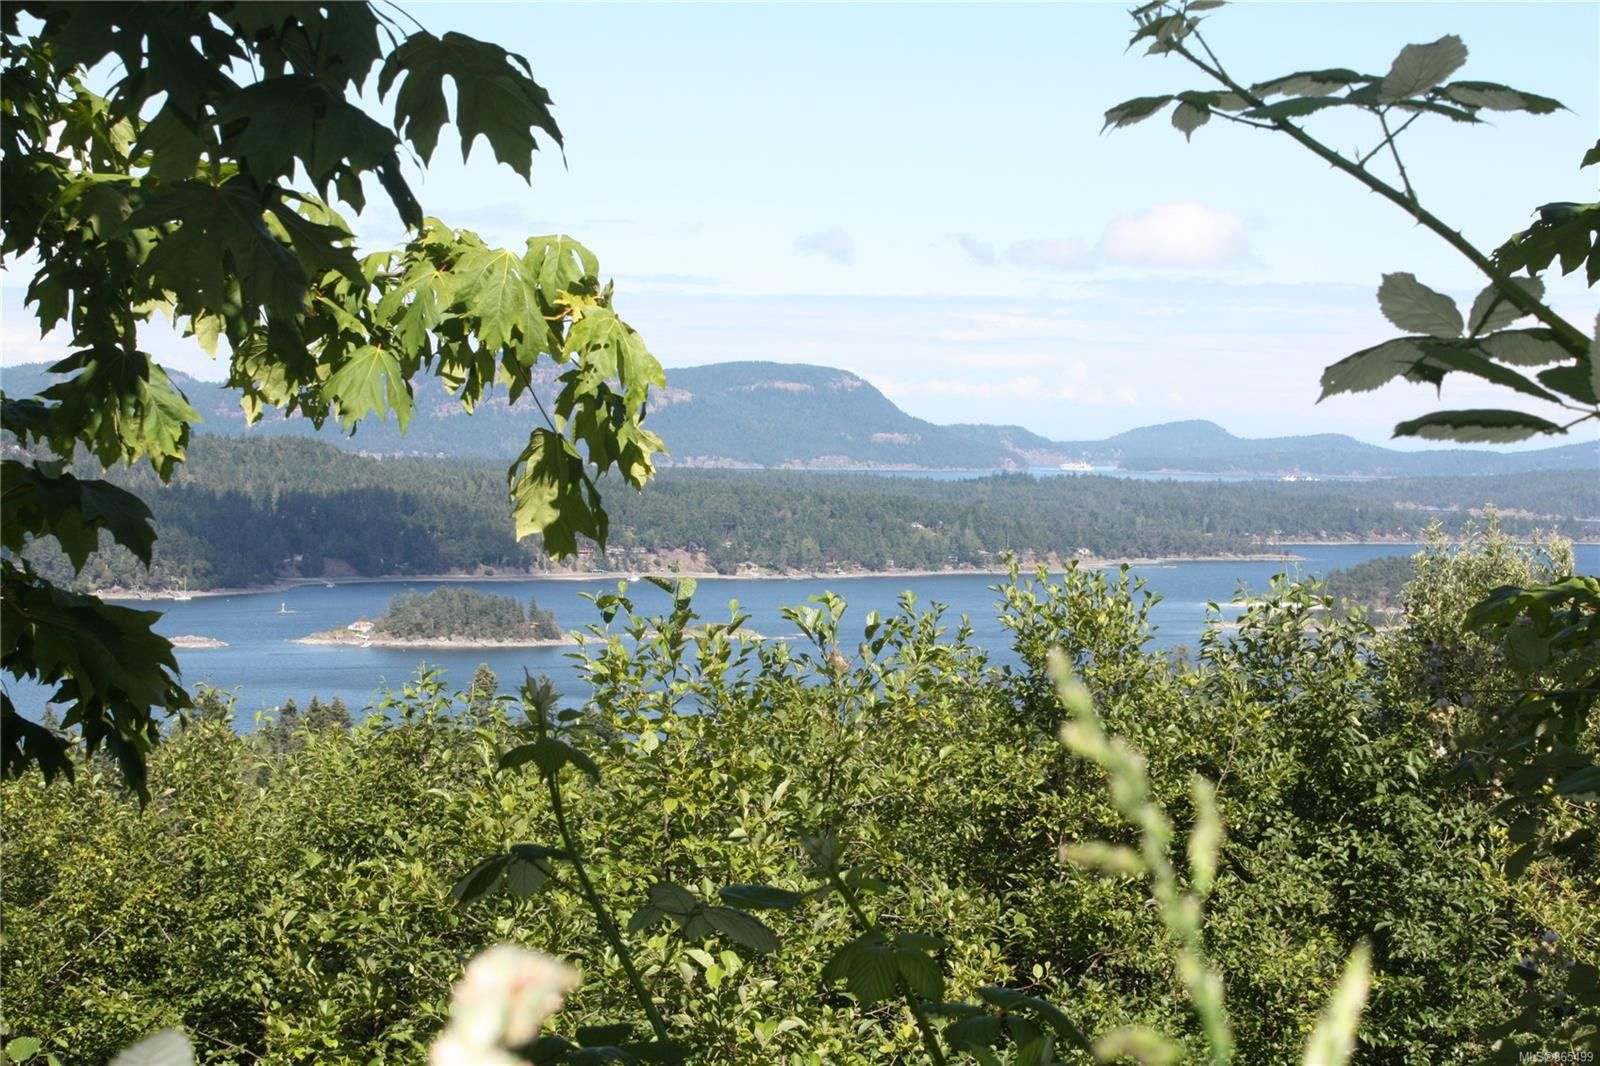 Main Photo: 188 Devine Dr in : GI Salt Spring Land for sale (Gulf Islands)  : MLS®# 865499